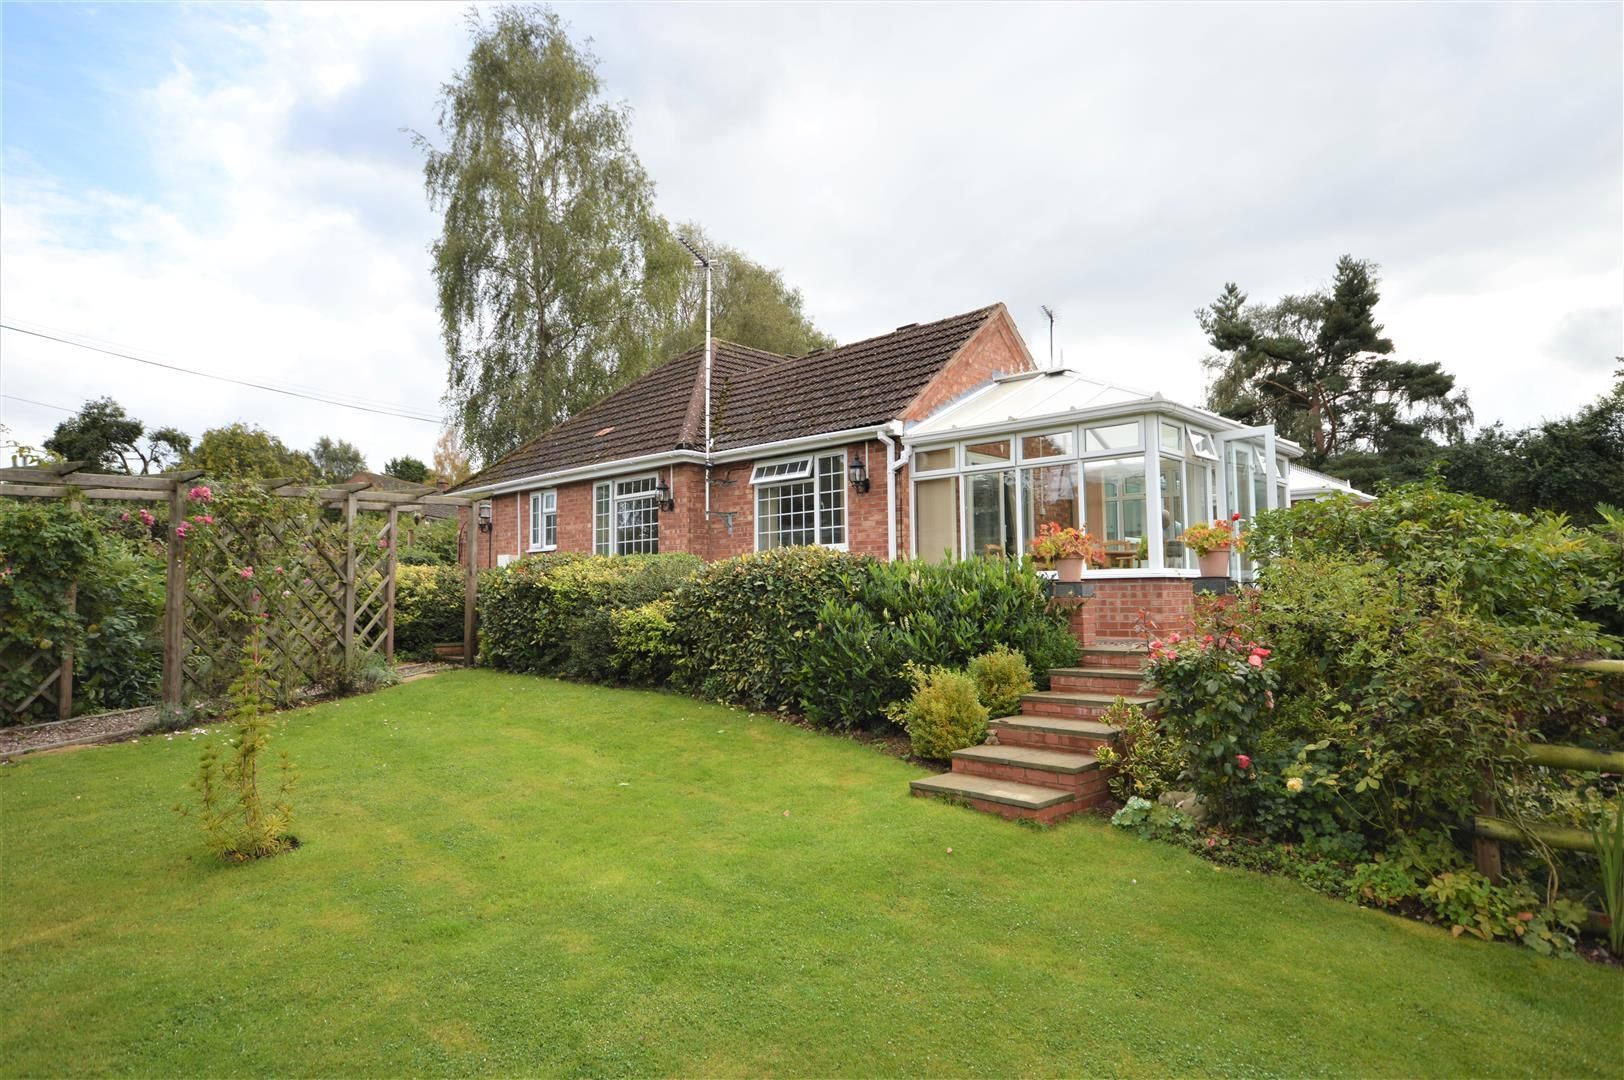 3 bed semi-detached-bungalow for sale in Upper Hill  - Property Image 1